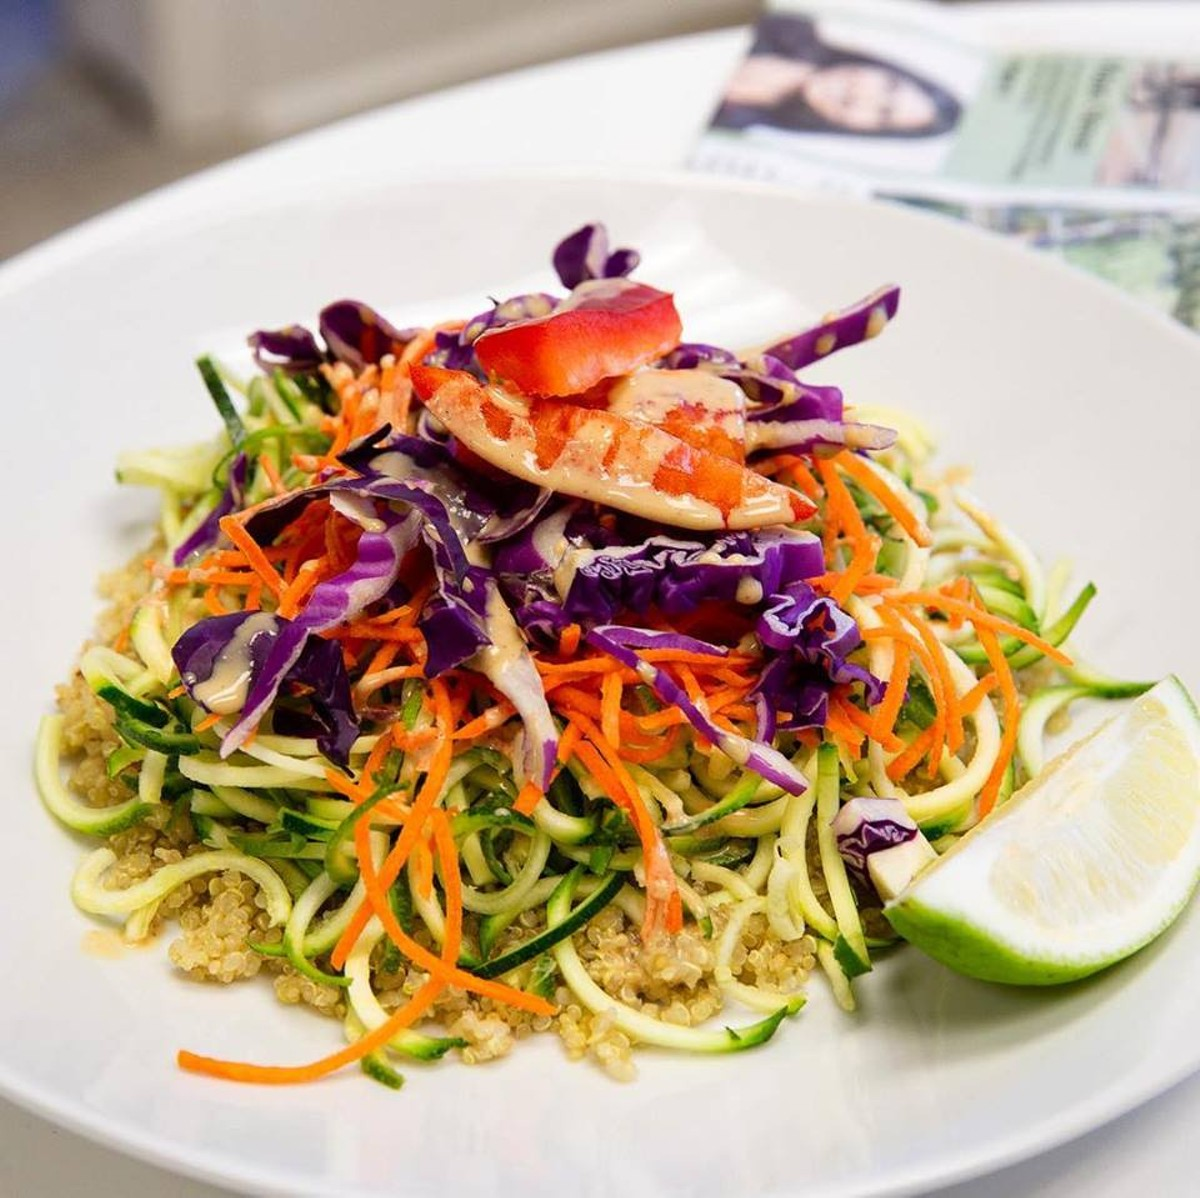 Vegan Pad Thai Salad at New Moon Market